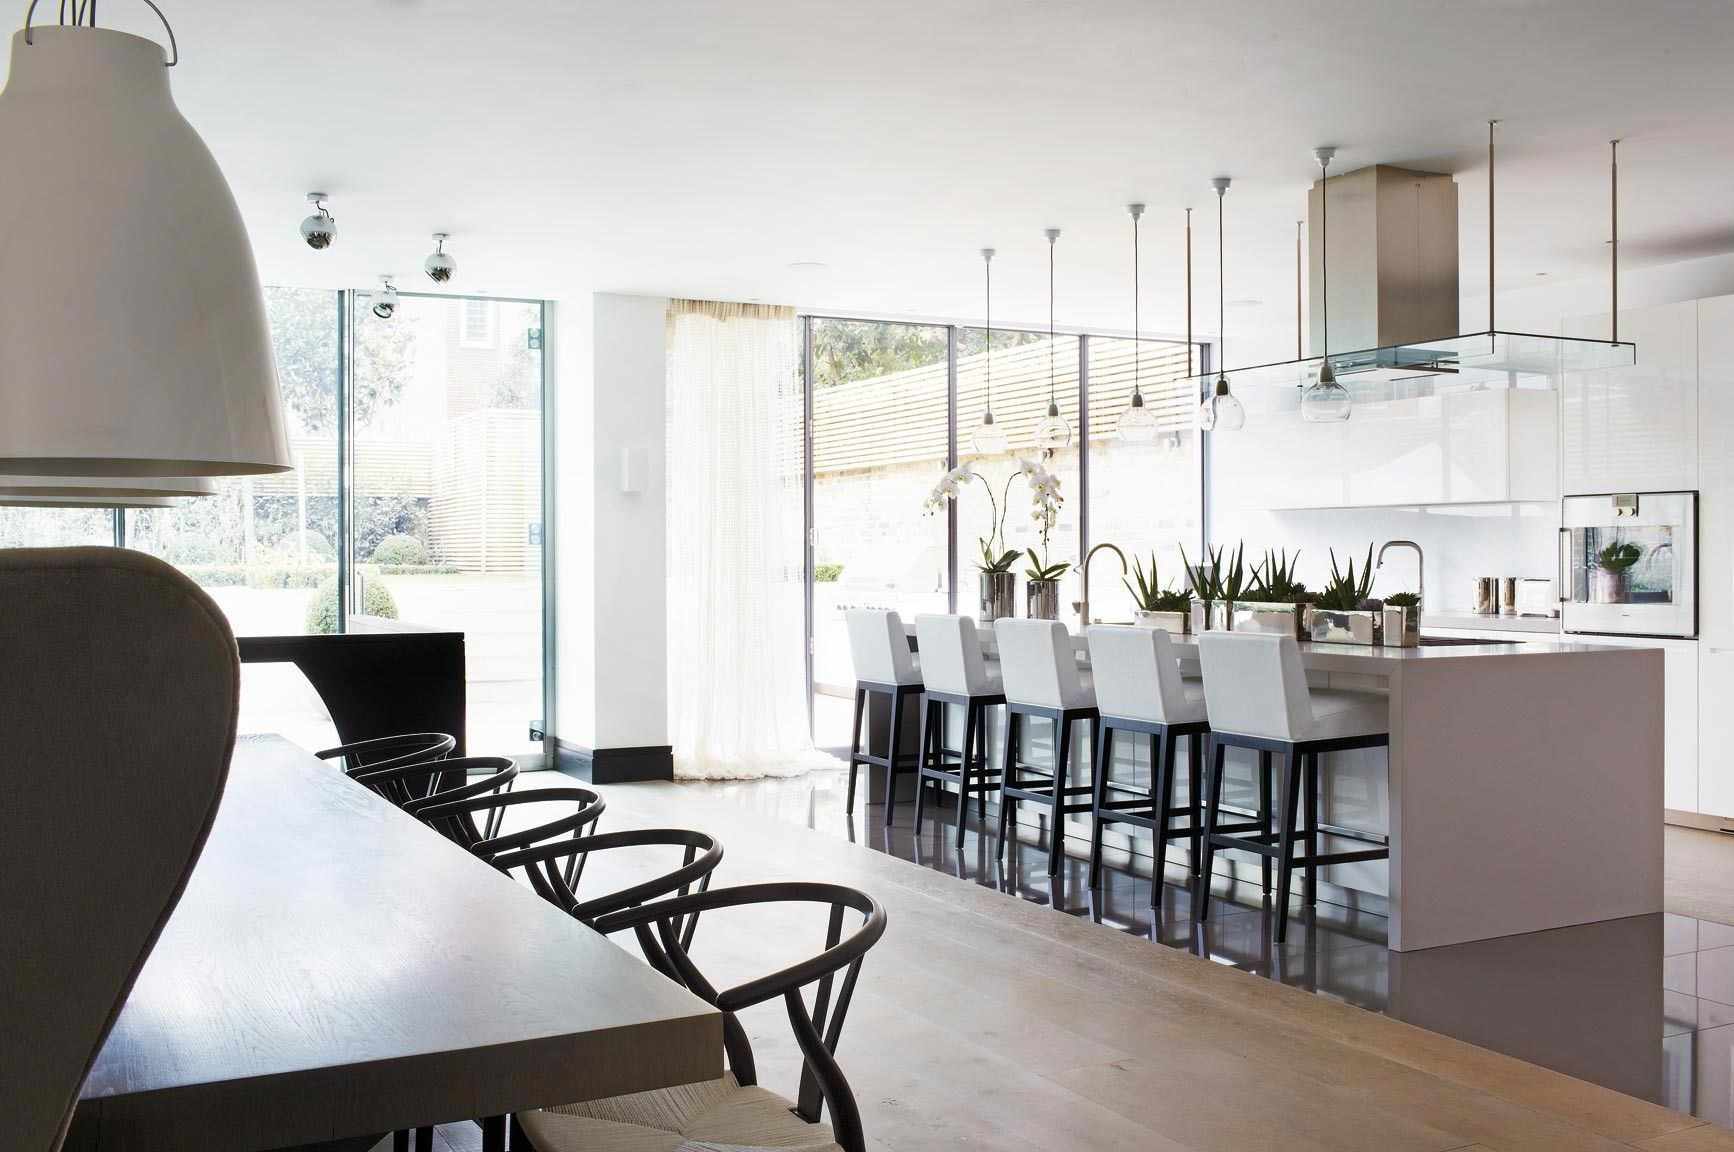 Top 10 Kelly Hoppen Design Ideas. Top 10 Kelly Hoppen Design Ideas   Kelly hoppen  Kitchens and